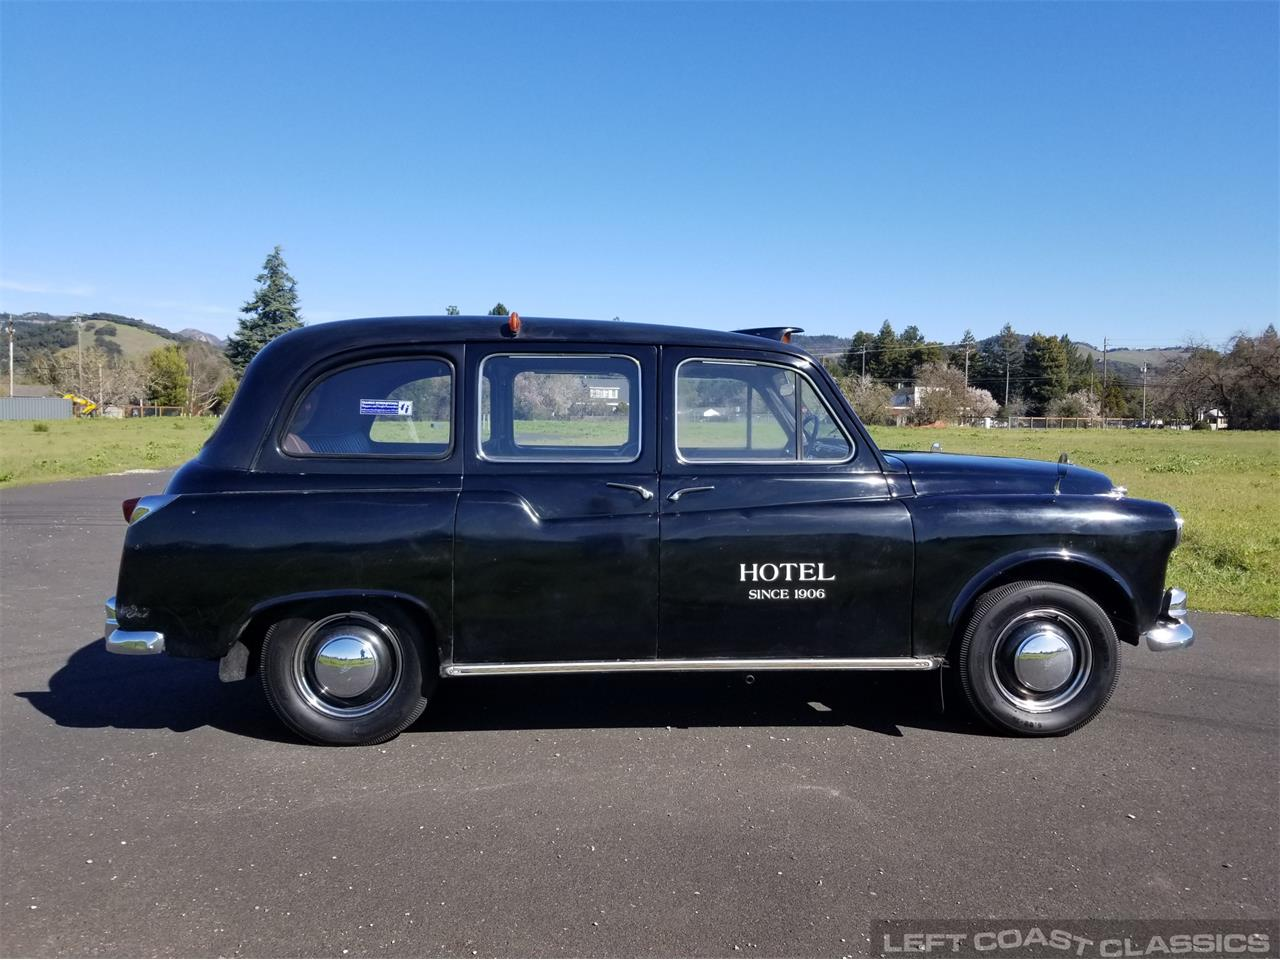 Large Picture of Classic '67 FX4 Taxi Cab - PKBX